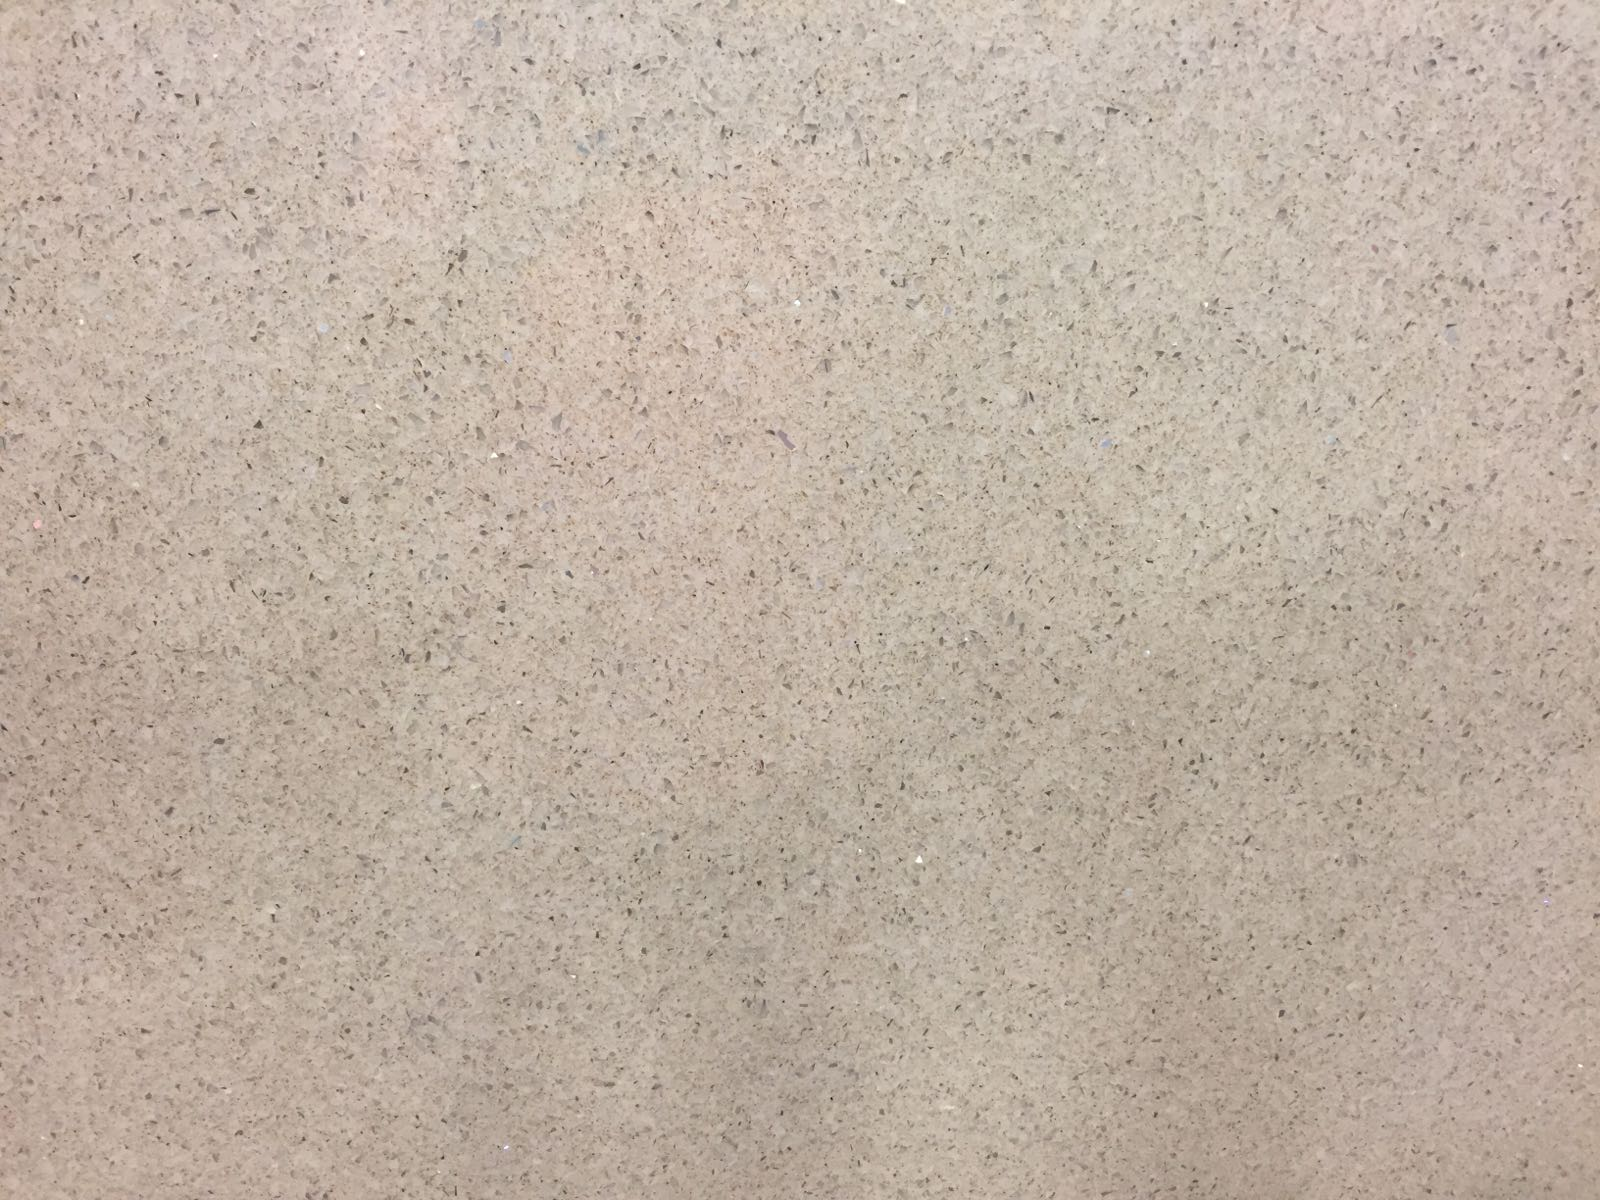 Beige Galaxy Quartz Slab 30Mm